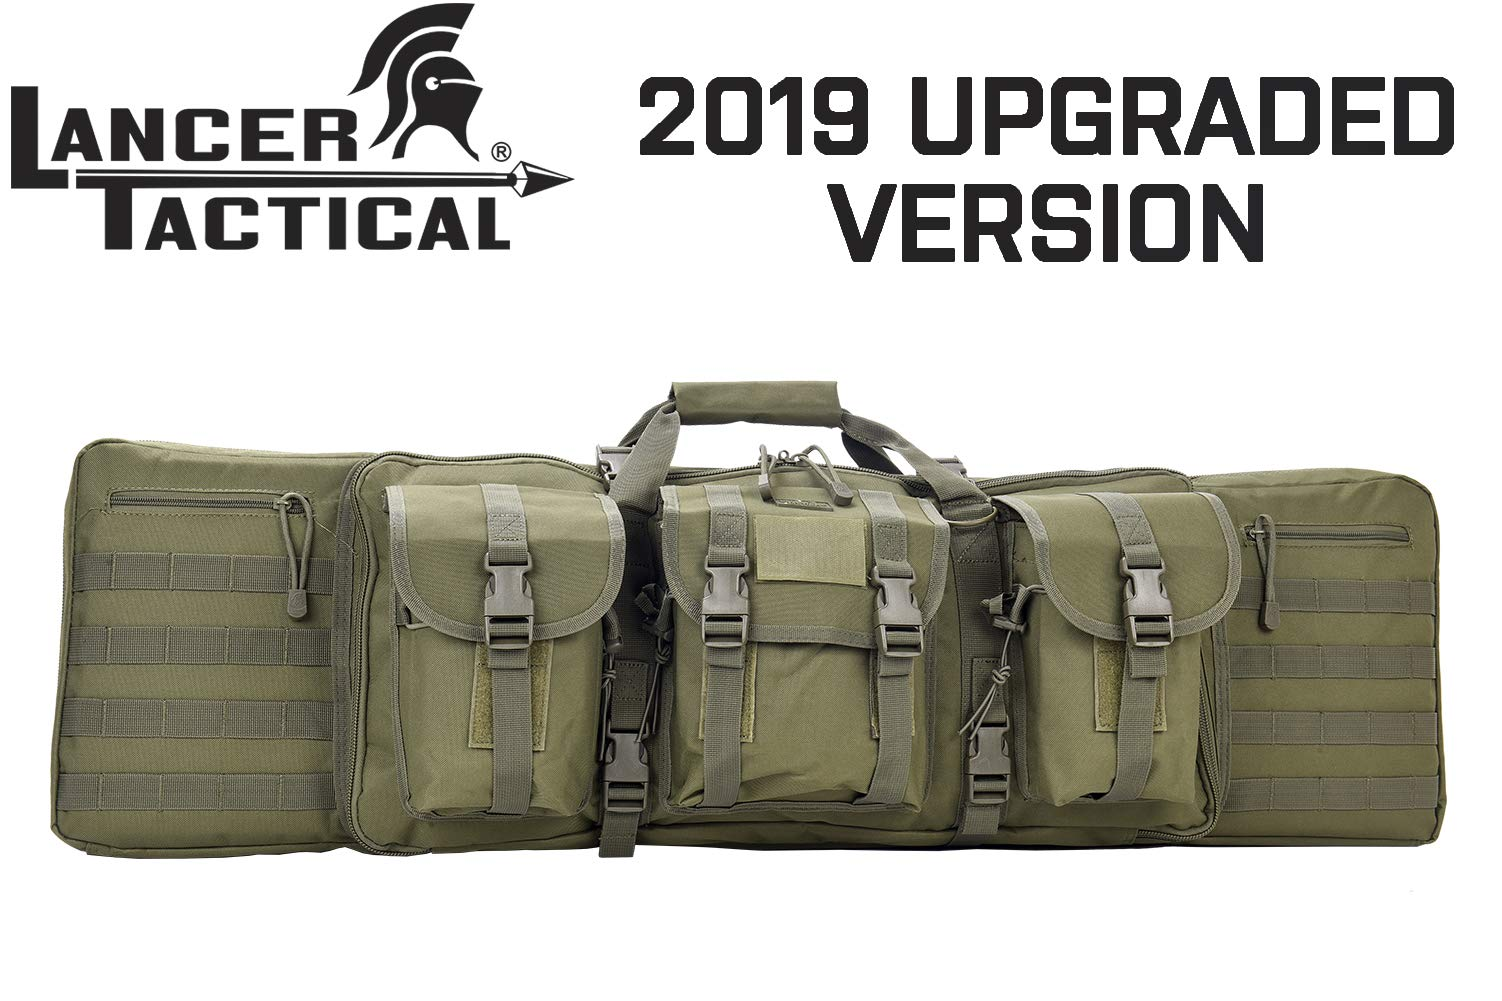 Lancer Tactical 600 Denier Polyester Double Carbine Soft Case Accessory Pouches MOLLE Webbing Secondary Gun Compartment Quick Detach Buckles Inner Storage Backpack Straps (42'' INCH, Olive DRAB Green) by Lancer Tactical